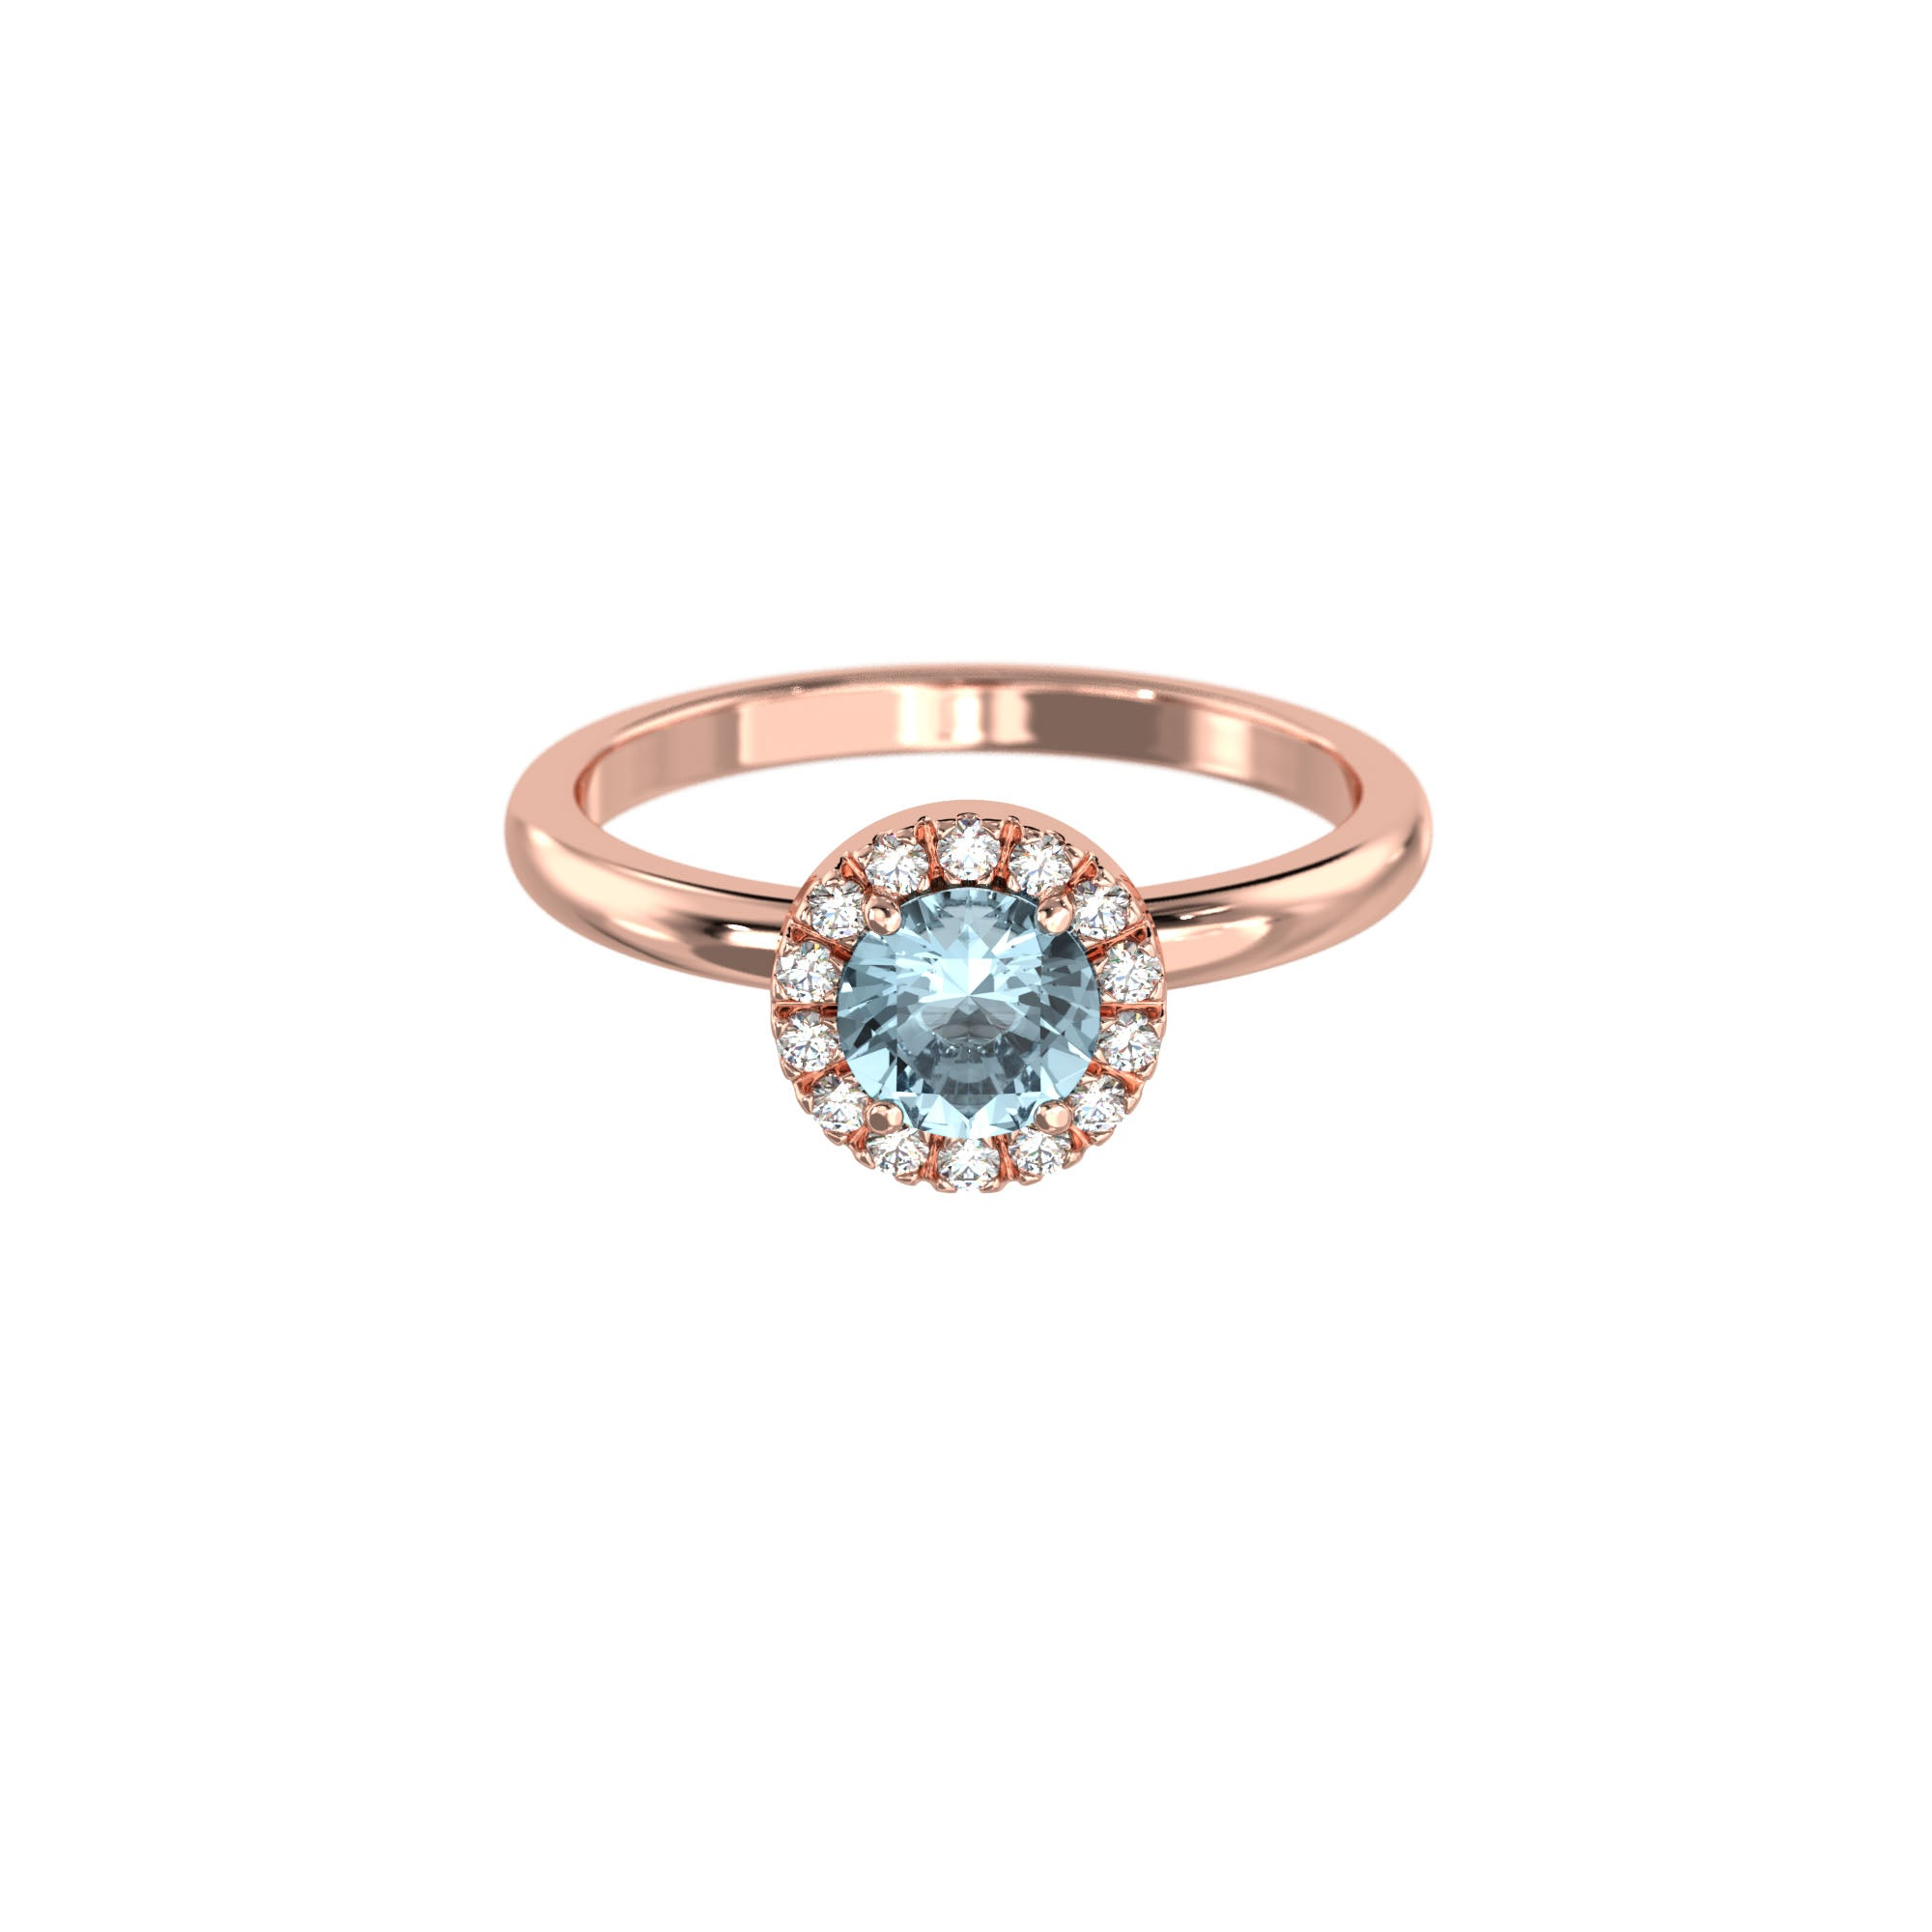 925 Silver Luxe Series Ring - Lydia (Aquamarine) - Rose Gold Plated